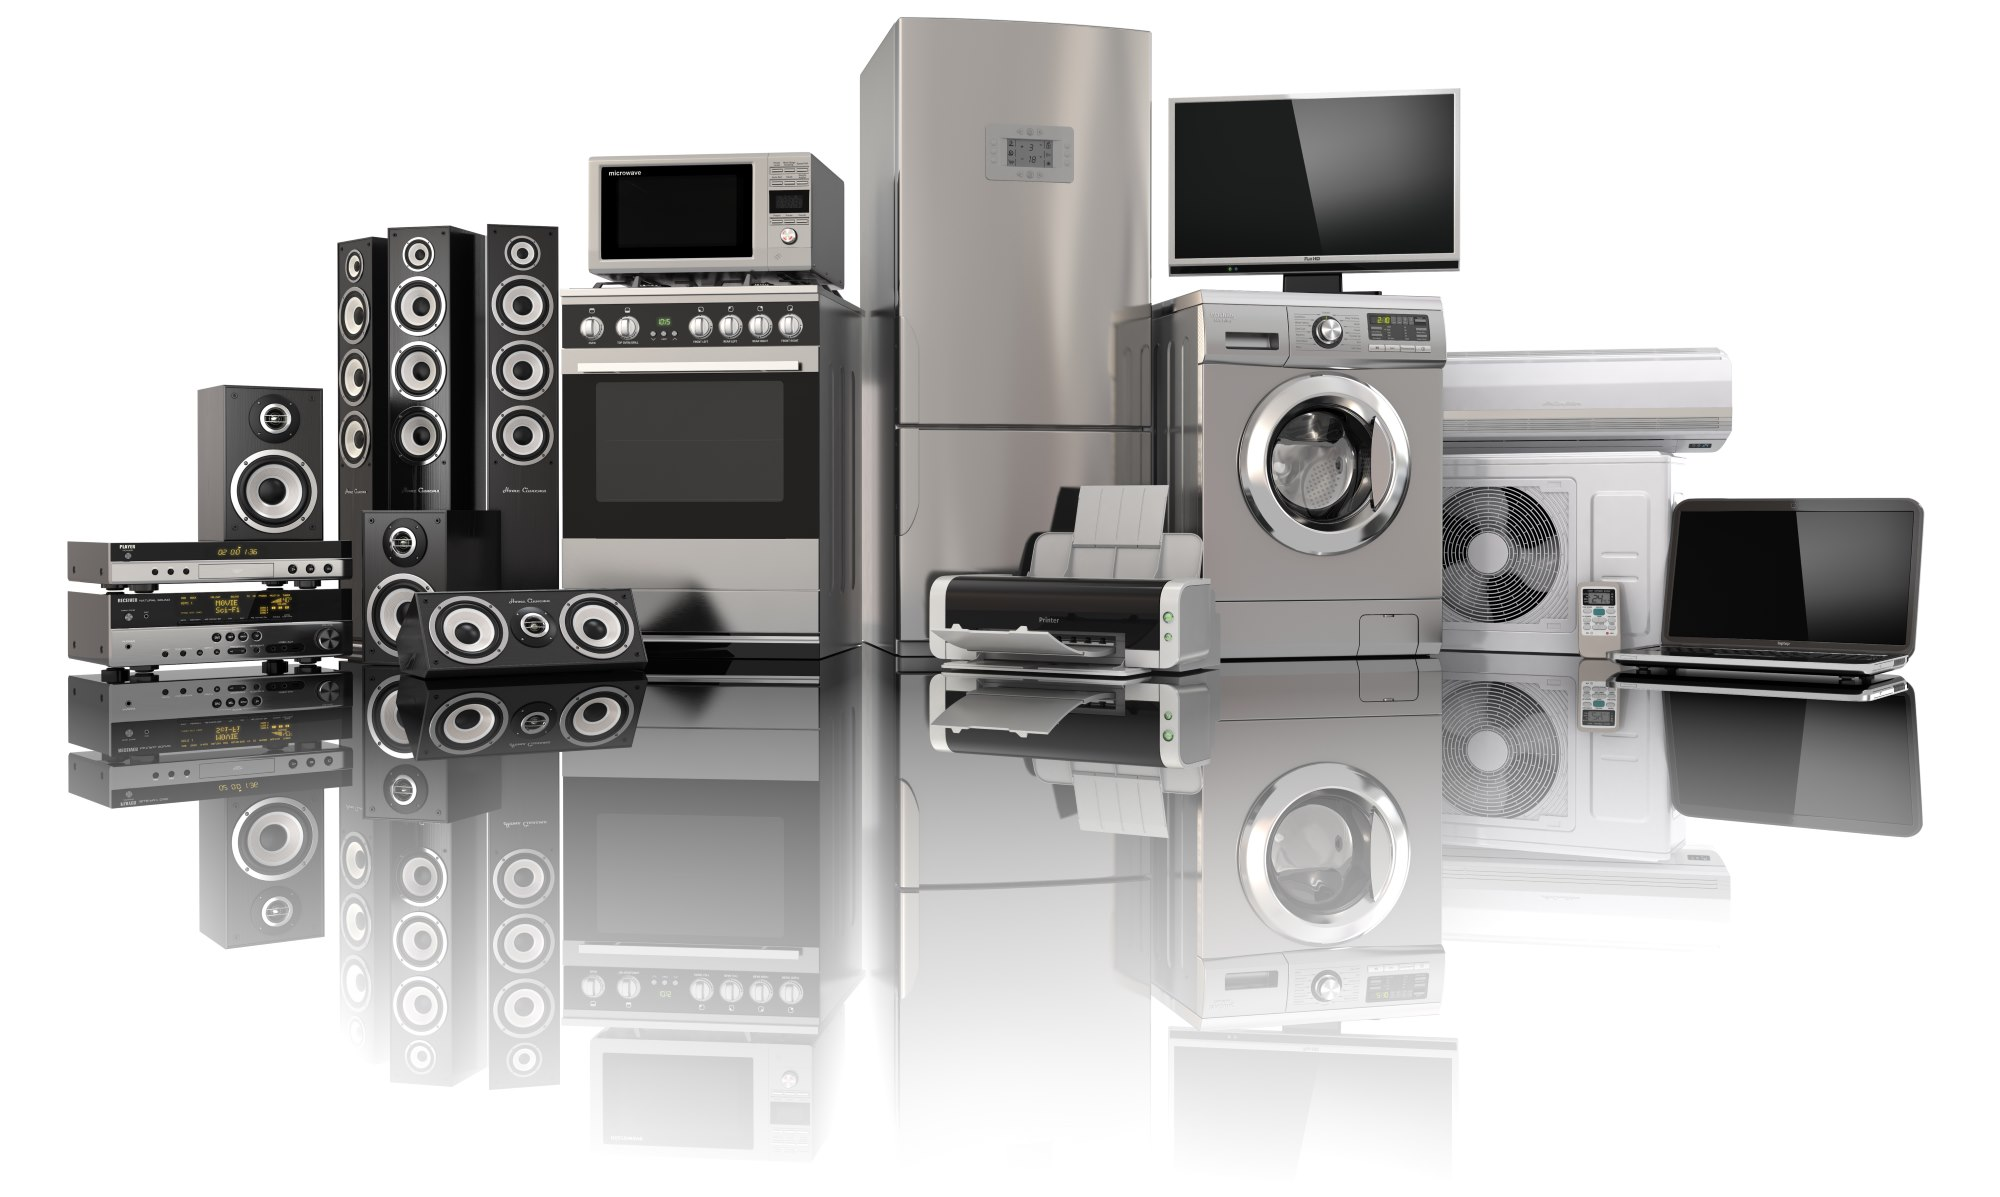 us major home appliance industry in Us major home appliance industry in 2002  the household appliance industry is huge the number of household appliance grows every year, but there is one sector of the industry, the major appliance sector that remains constant.